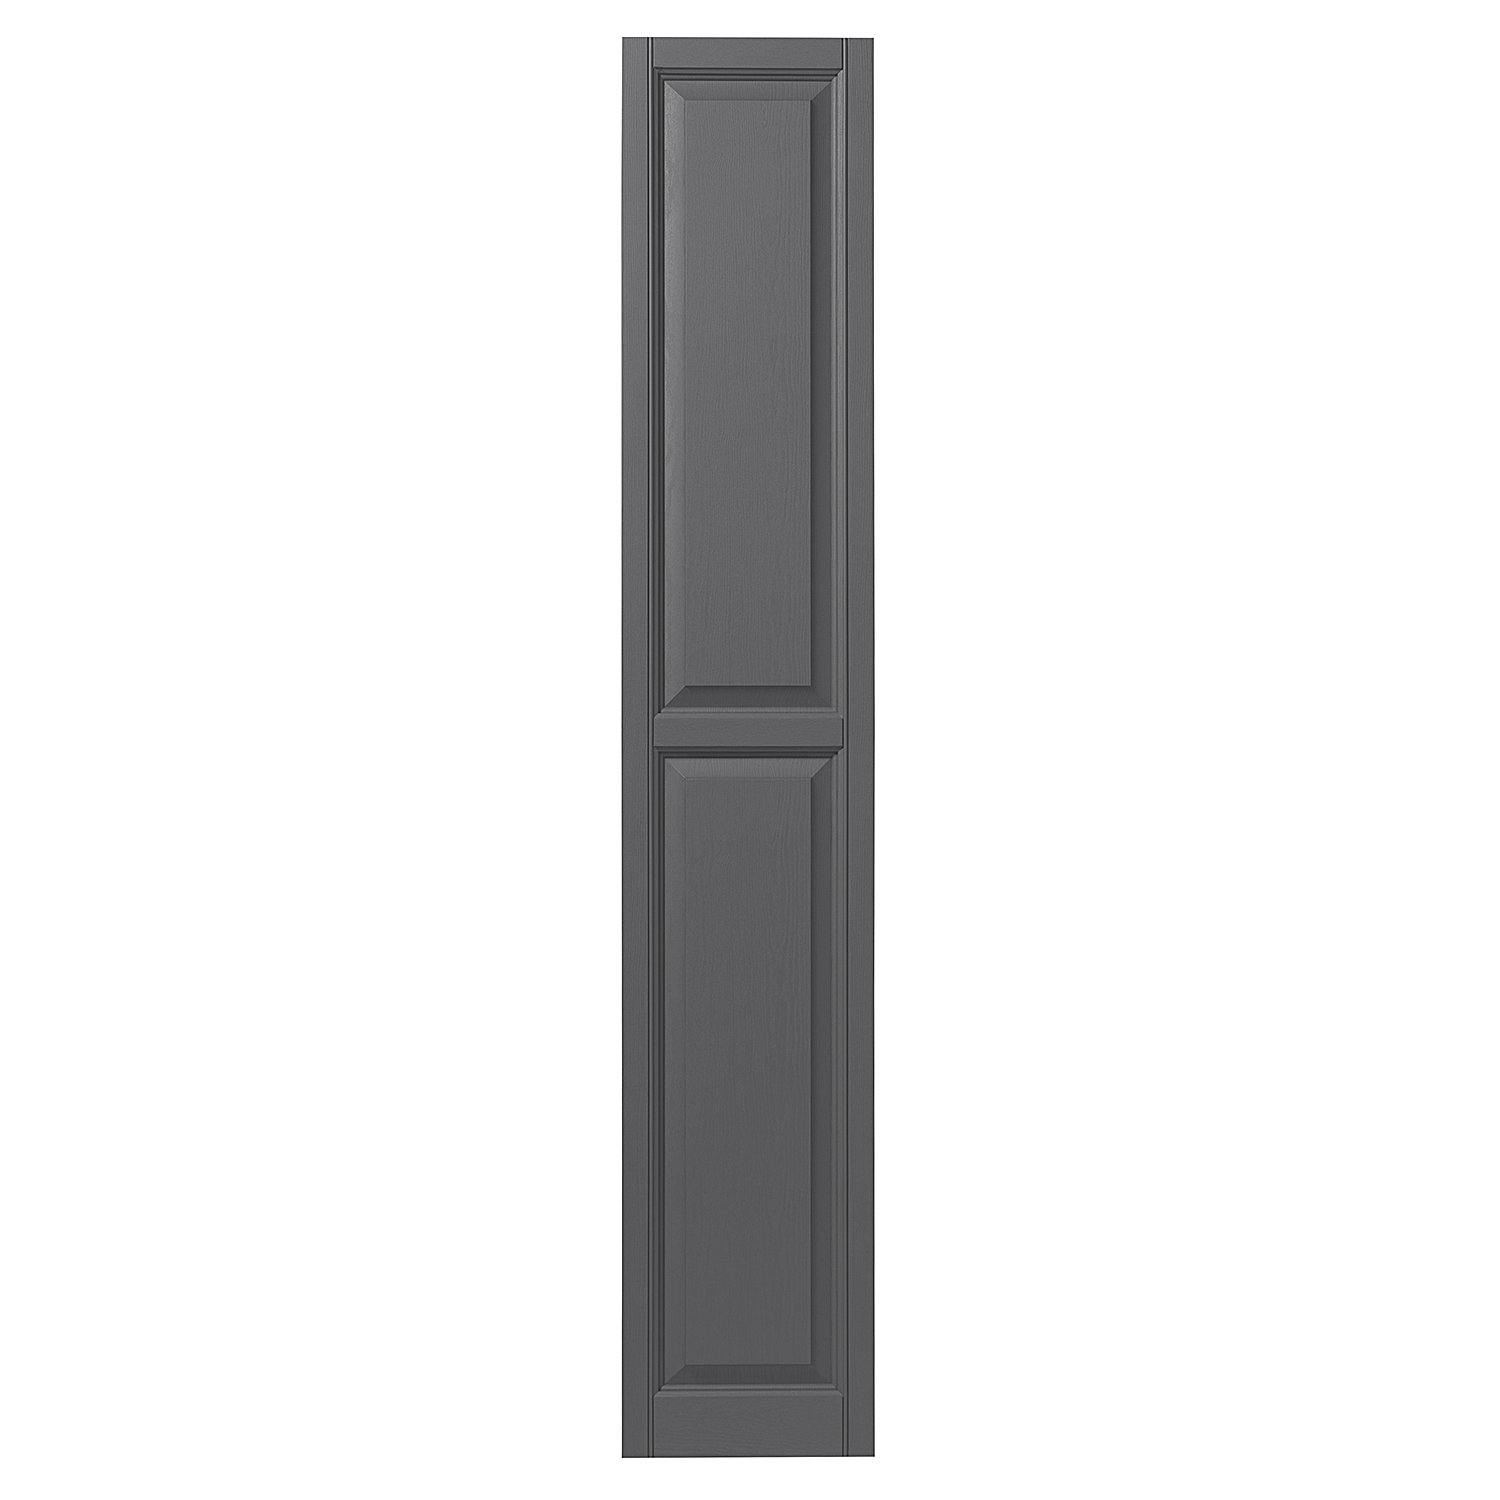 Ply Gem Shutters and Accents VINRP1571 95 Raised Panel Shutter 15 Dark Navy